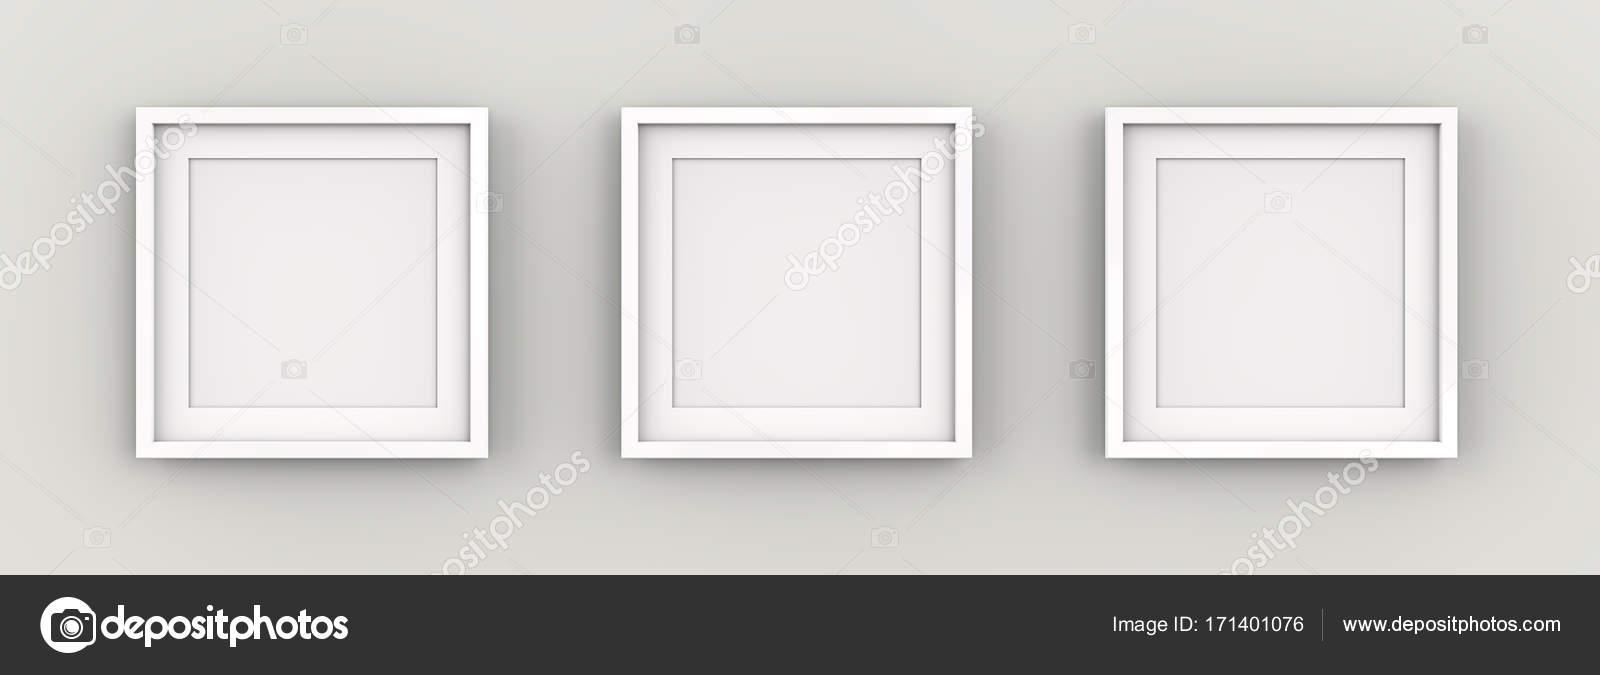 White Picture Frames on Wall. — Stock Photo © JohanH #171401076